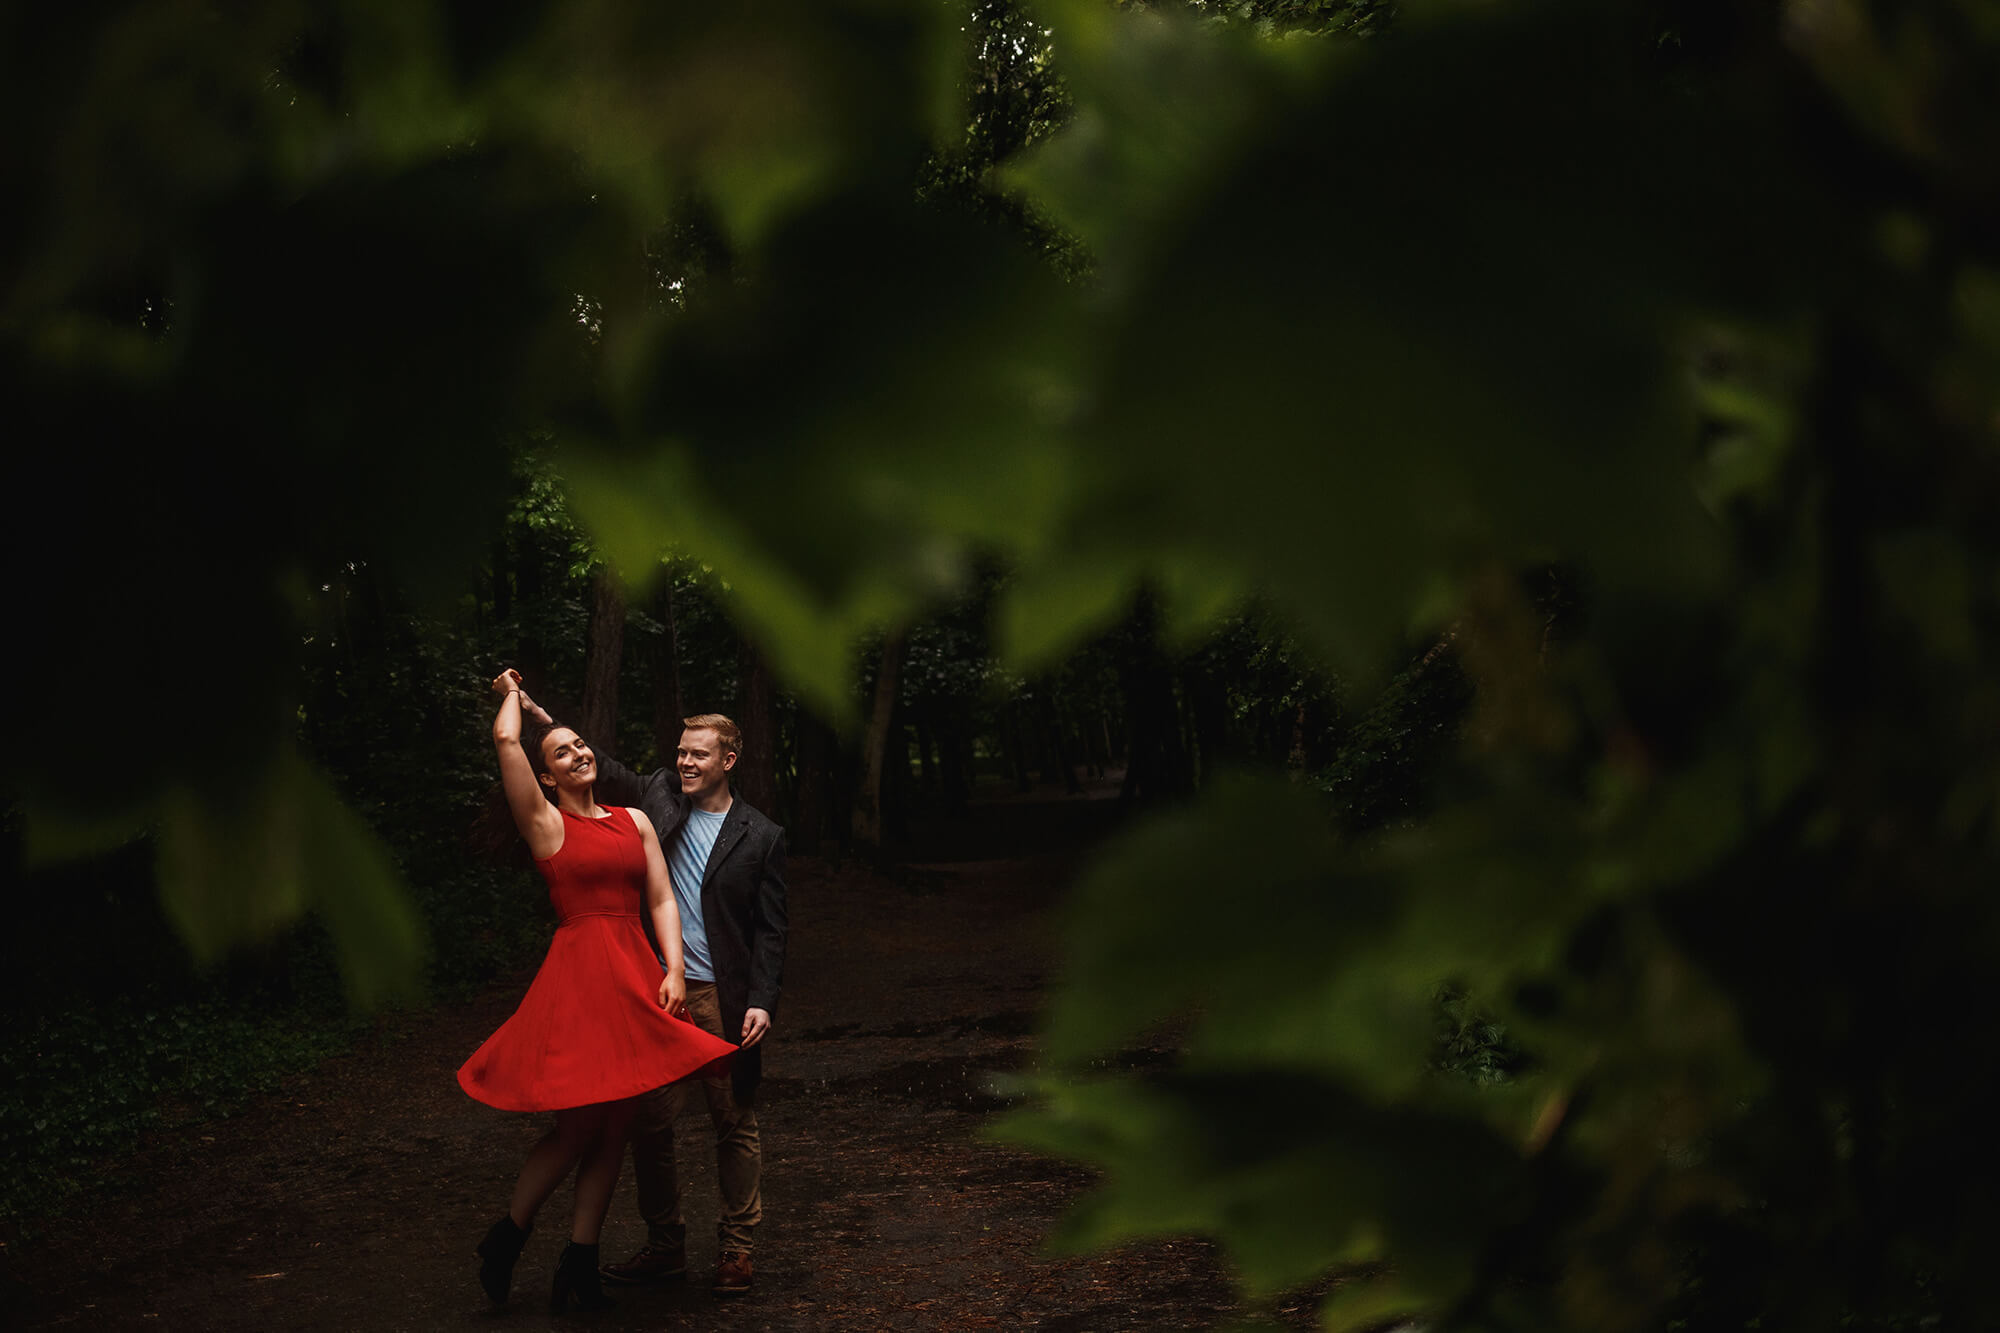 twirling girl in red dress through trees